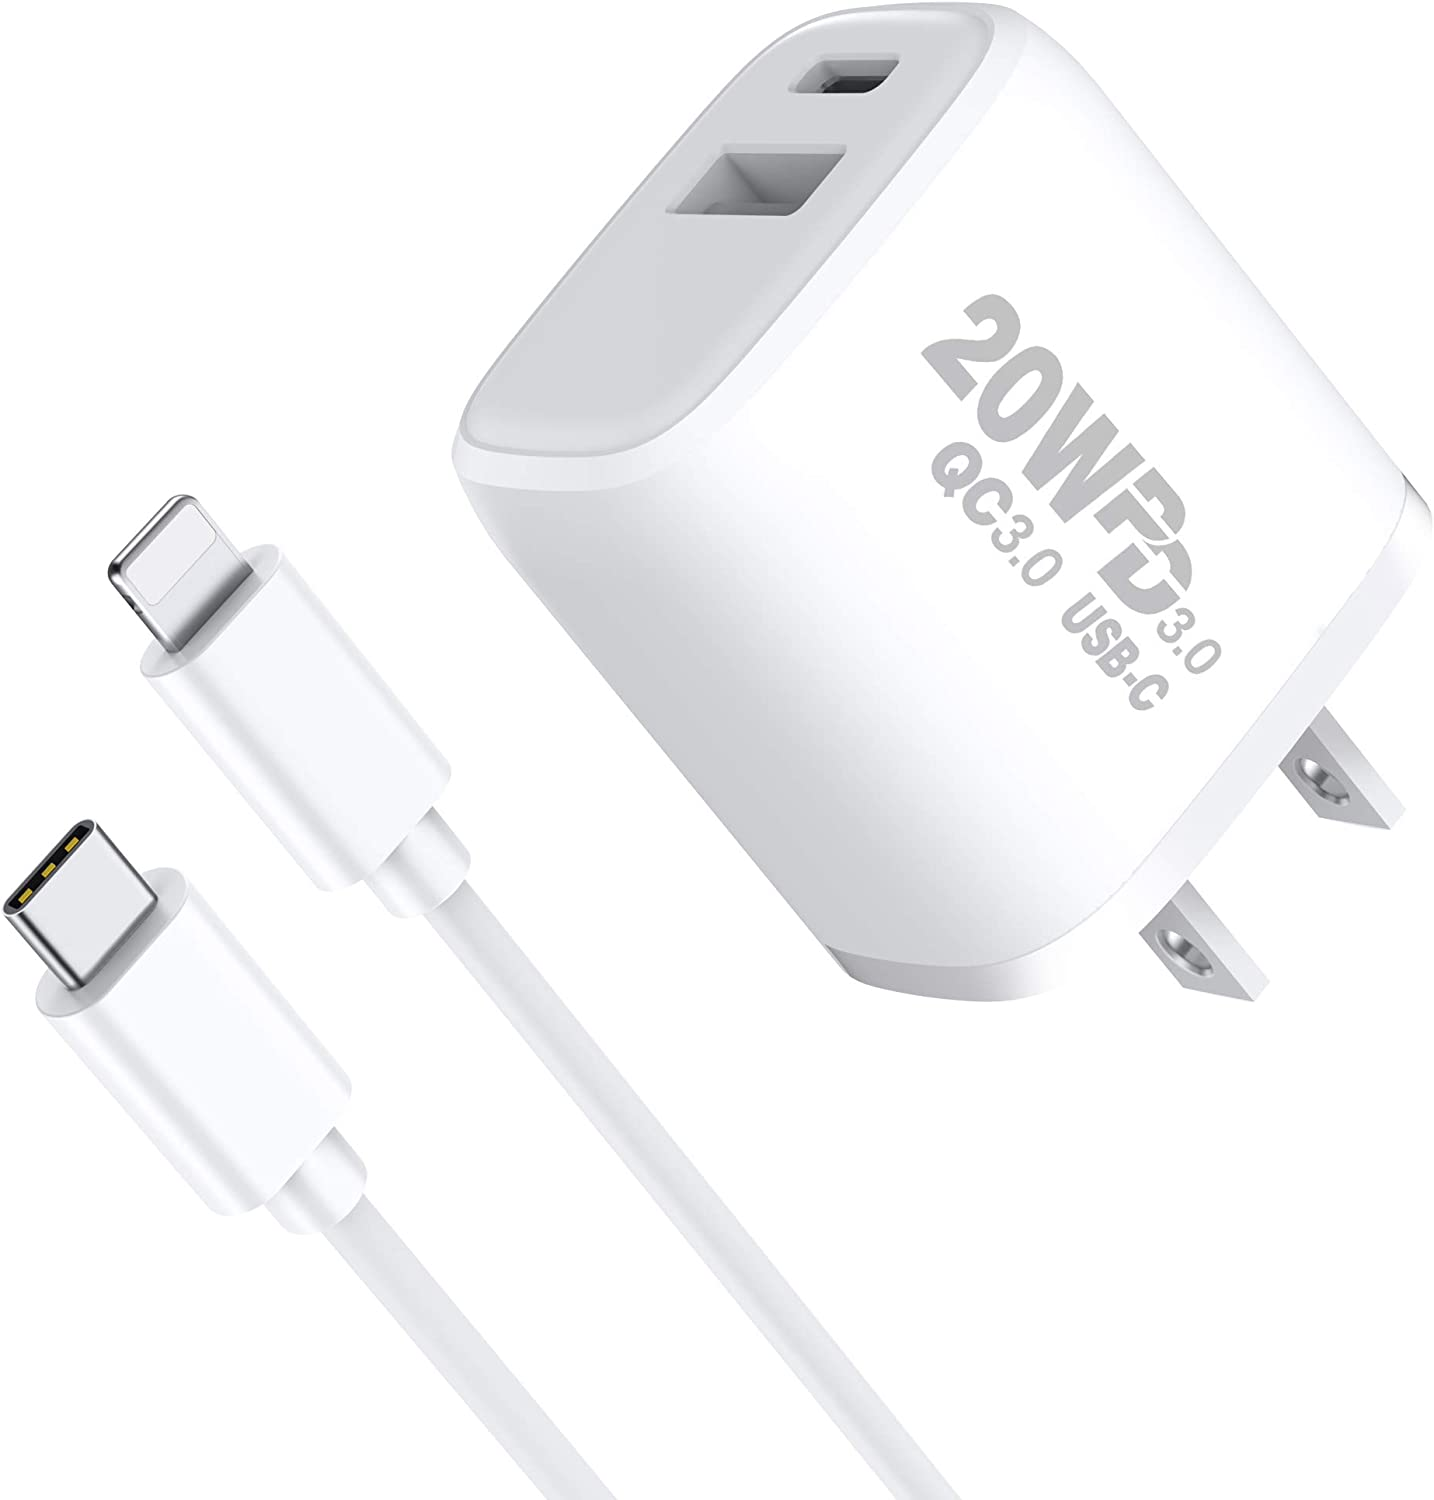 TISSYEE iPhone Fast Charger, 20W USB C Power Delivery with QC 3.0 2 in 1 Fast Charger,MFI Certified Charger for iPhone 12/12 Mini/12 Pro/12 Pro Max, iPad Pro, AirPods Pro, and More (White)